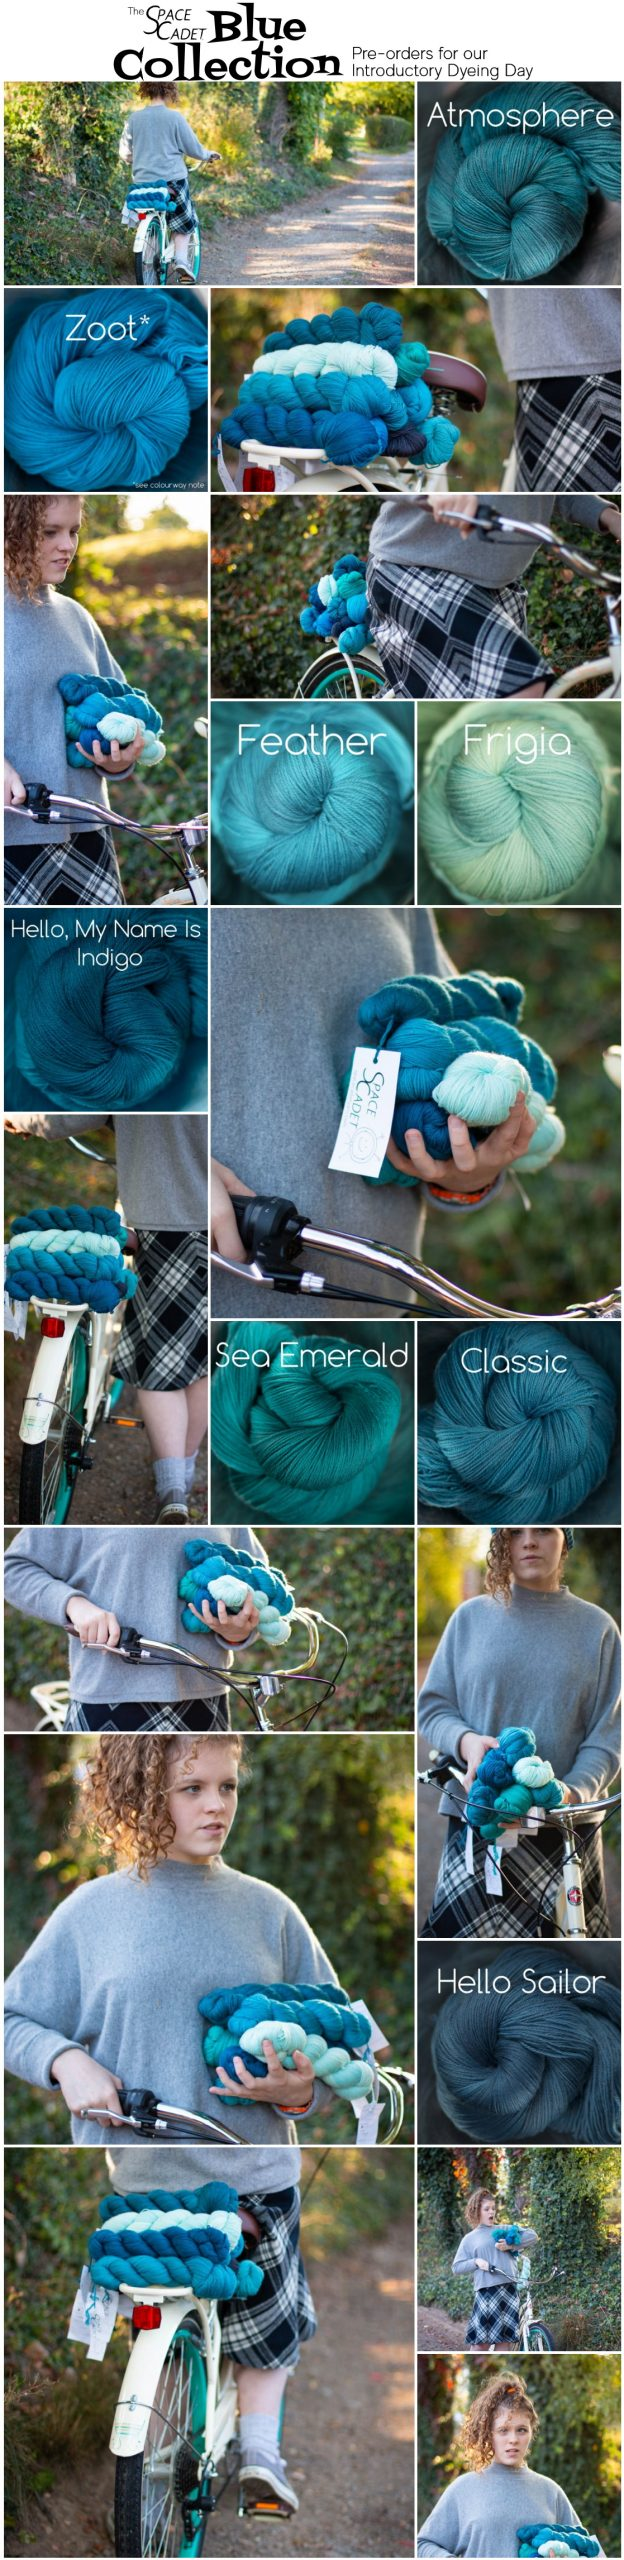 lots of photos of a girl on a bike with blue yarn on the back